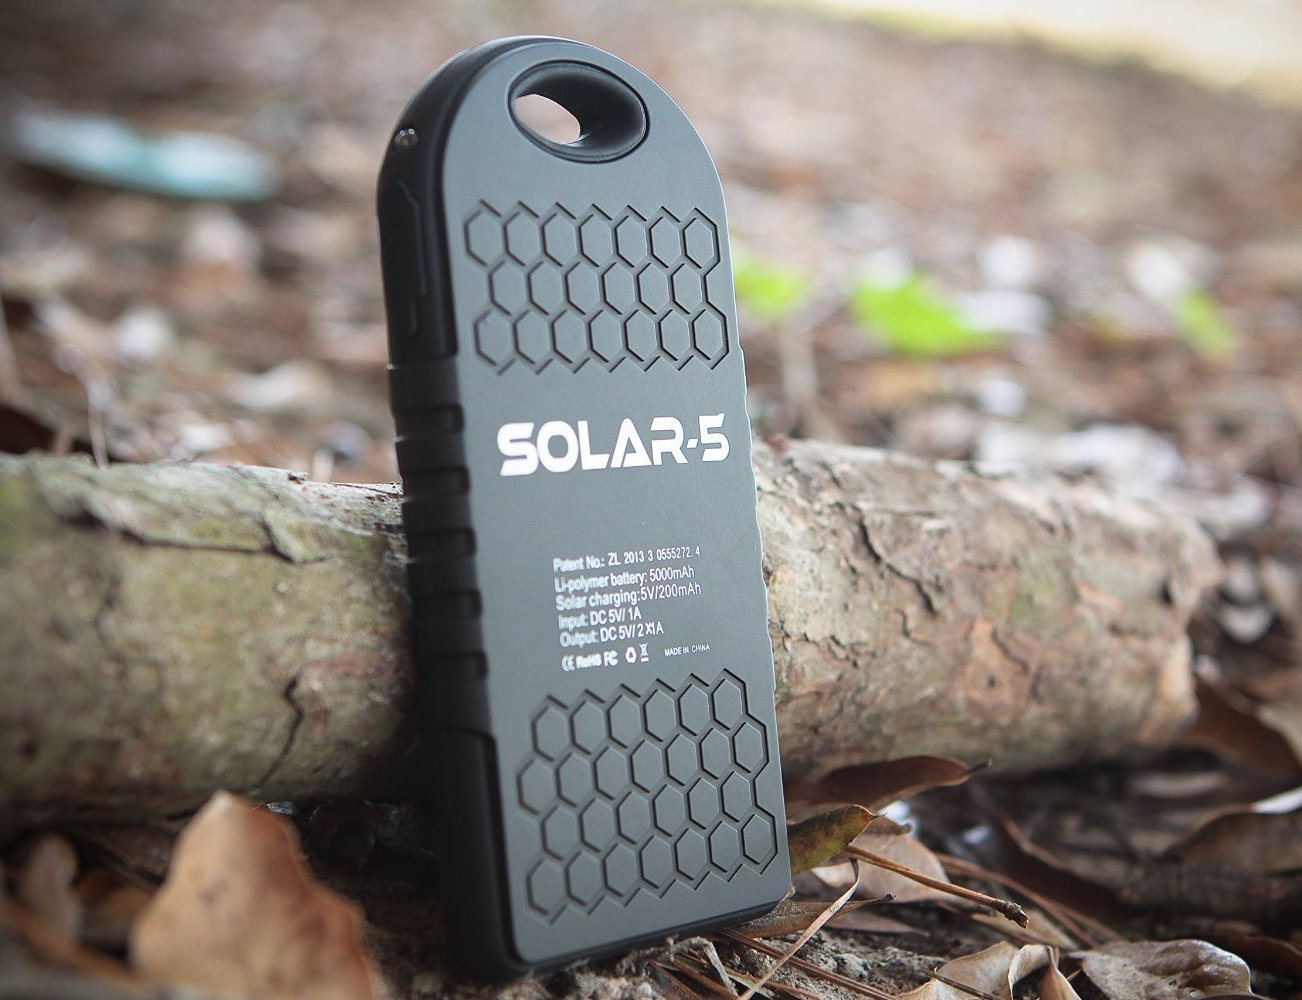 Solar-5 Solar Panel 5000mAh charger by Creative Edge